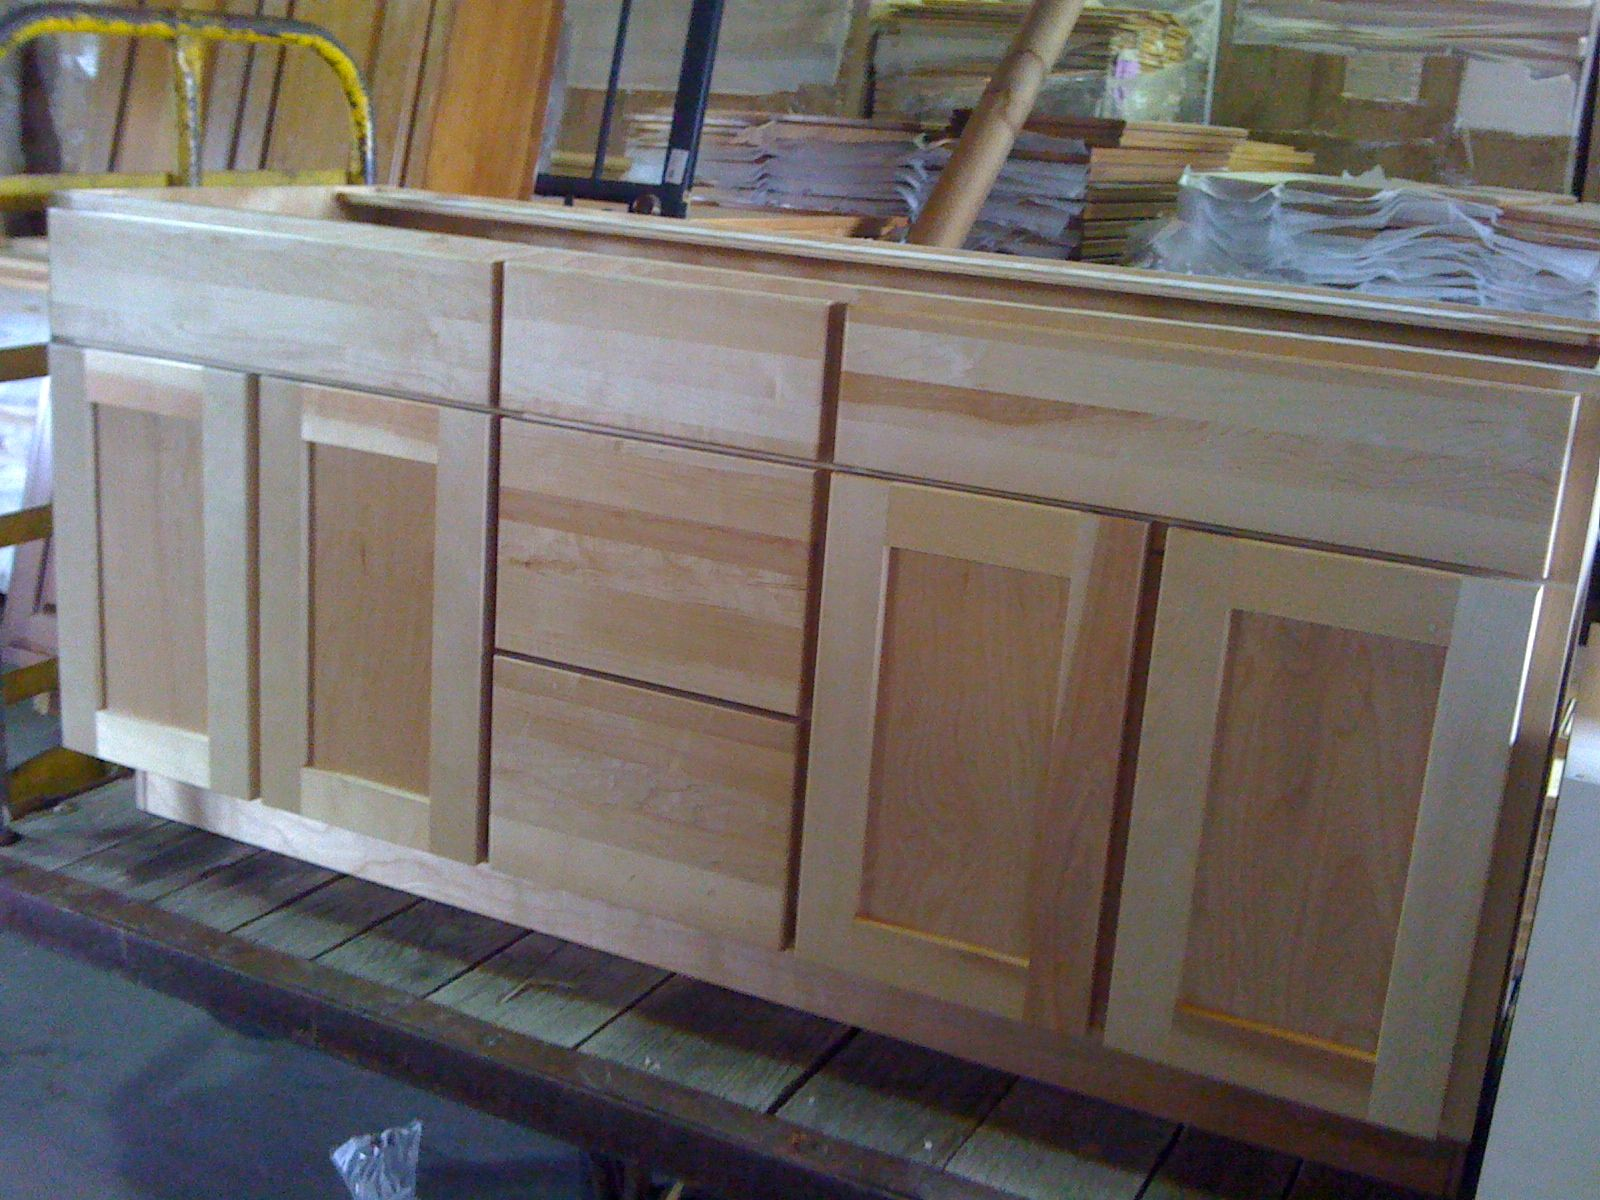 Custom Cabinets Now Online Bud S Warehouse Denver 39 S Home Improvement Thrift Store For 20 Years